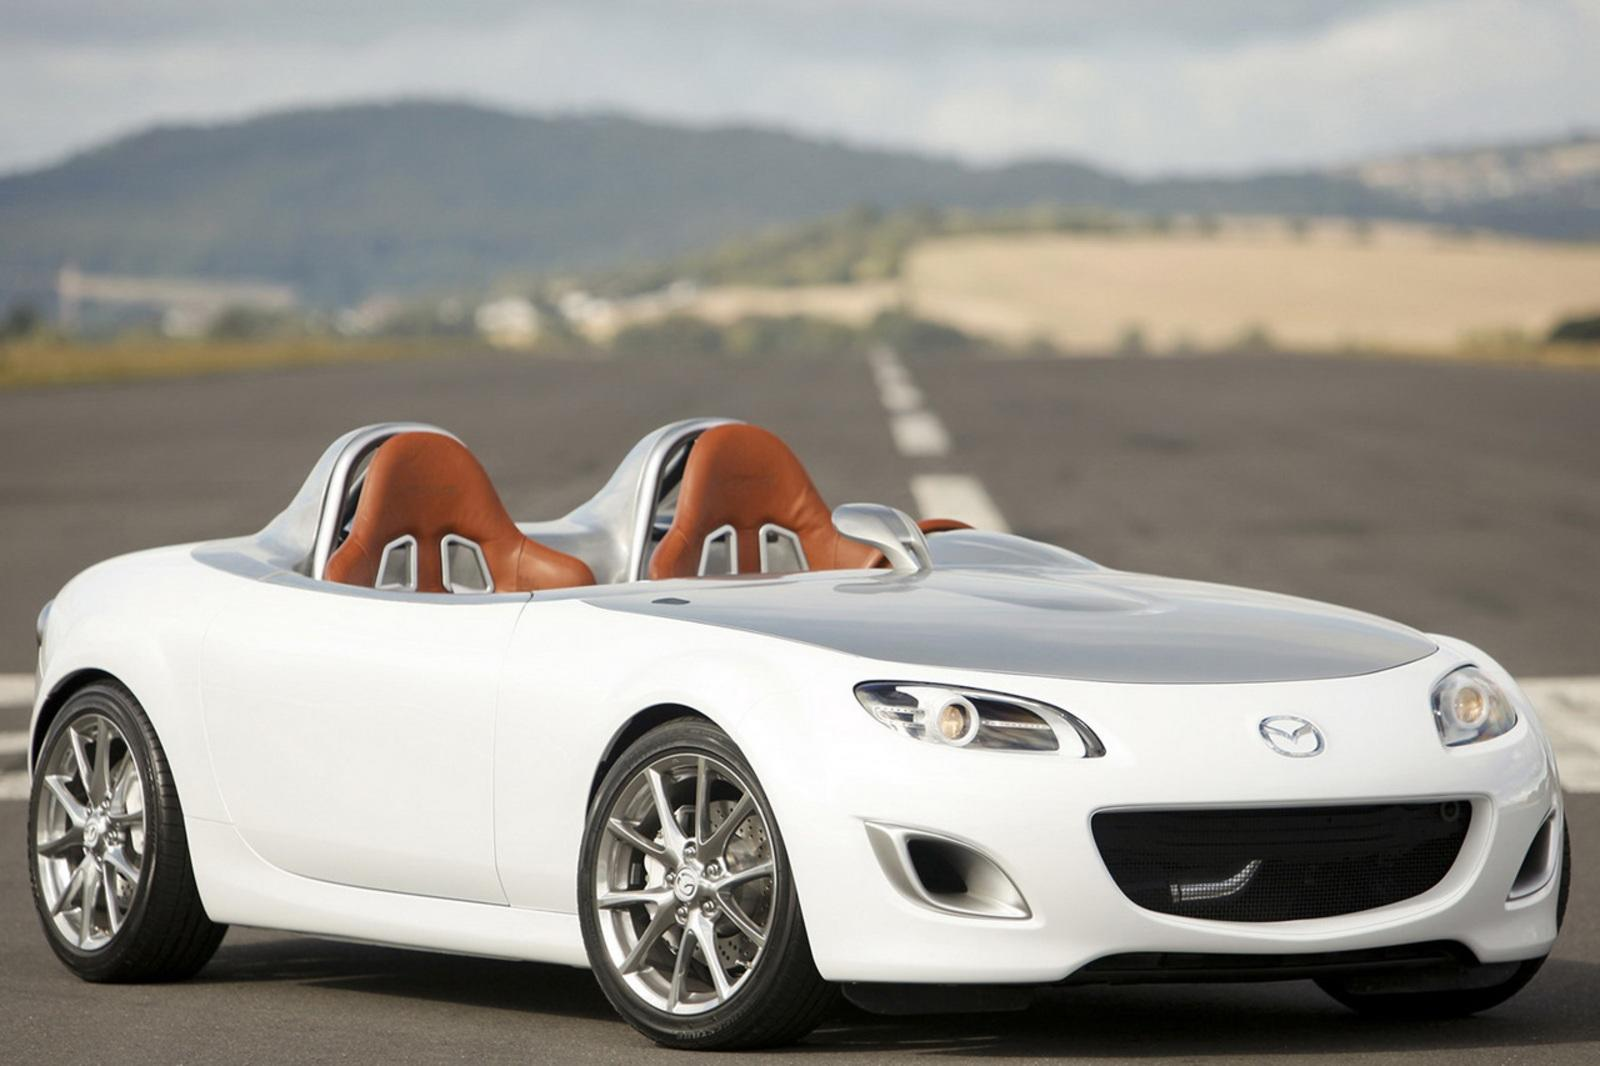 https://pictures.topspeed.com/IMG/crop/200909/mazda-mx-5-superligh_1600x0w.jpg